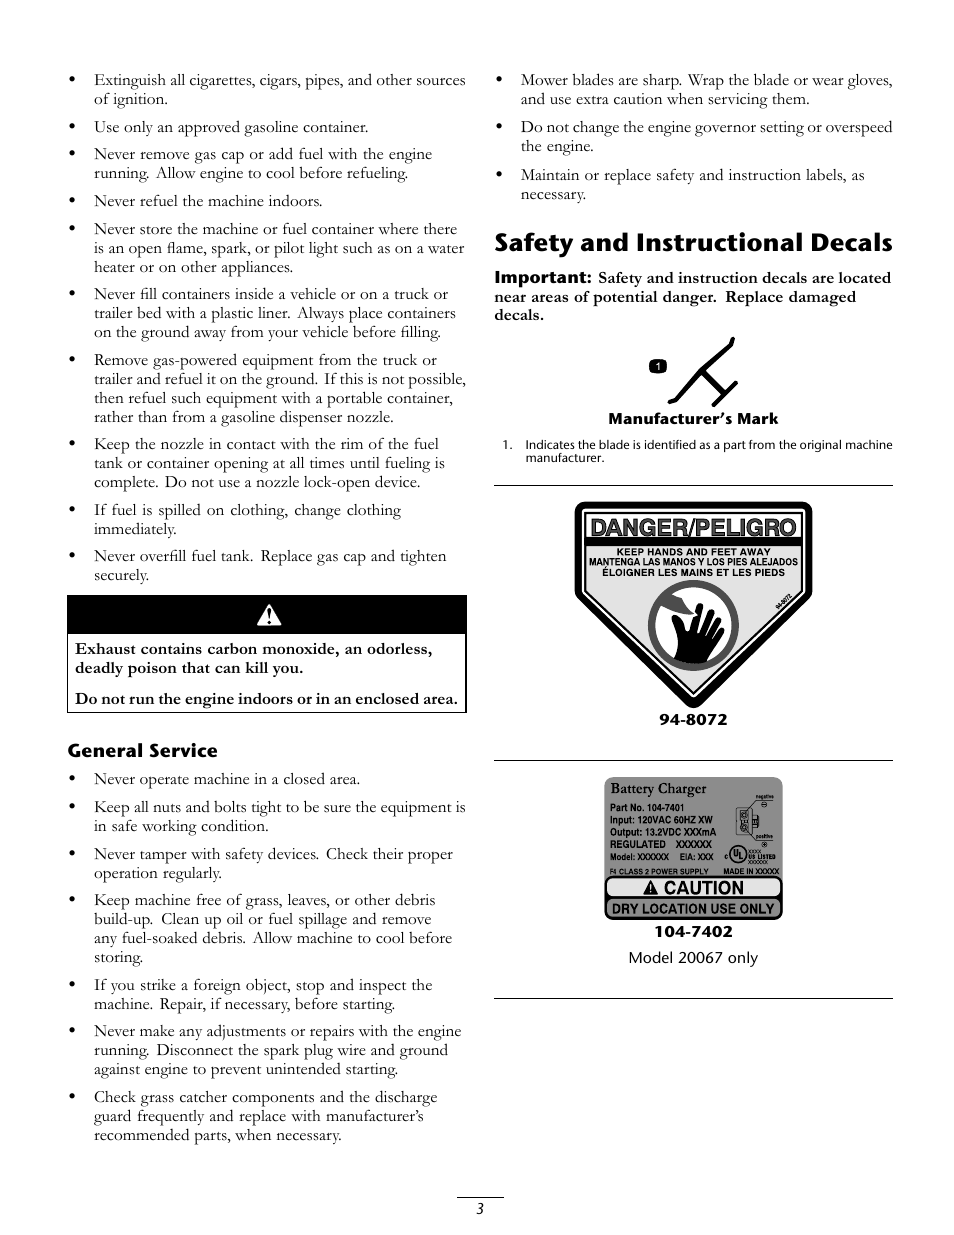 safety and instructional decals toro 20067 user manual page 3 20 rh manualsdir com toro 20068 manual Mis 20067 4 001